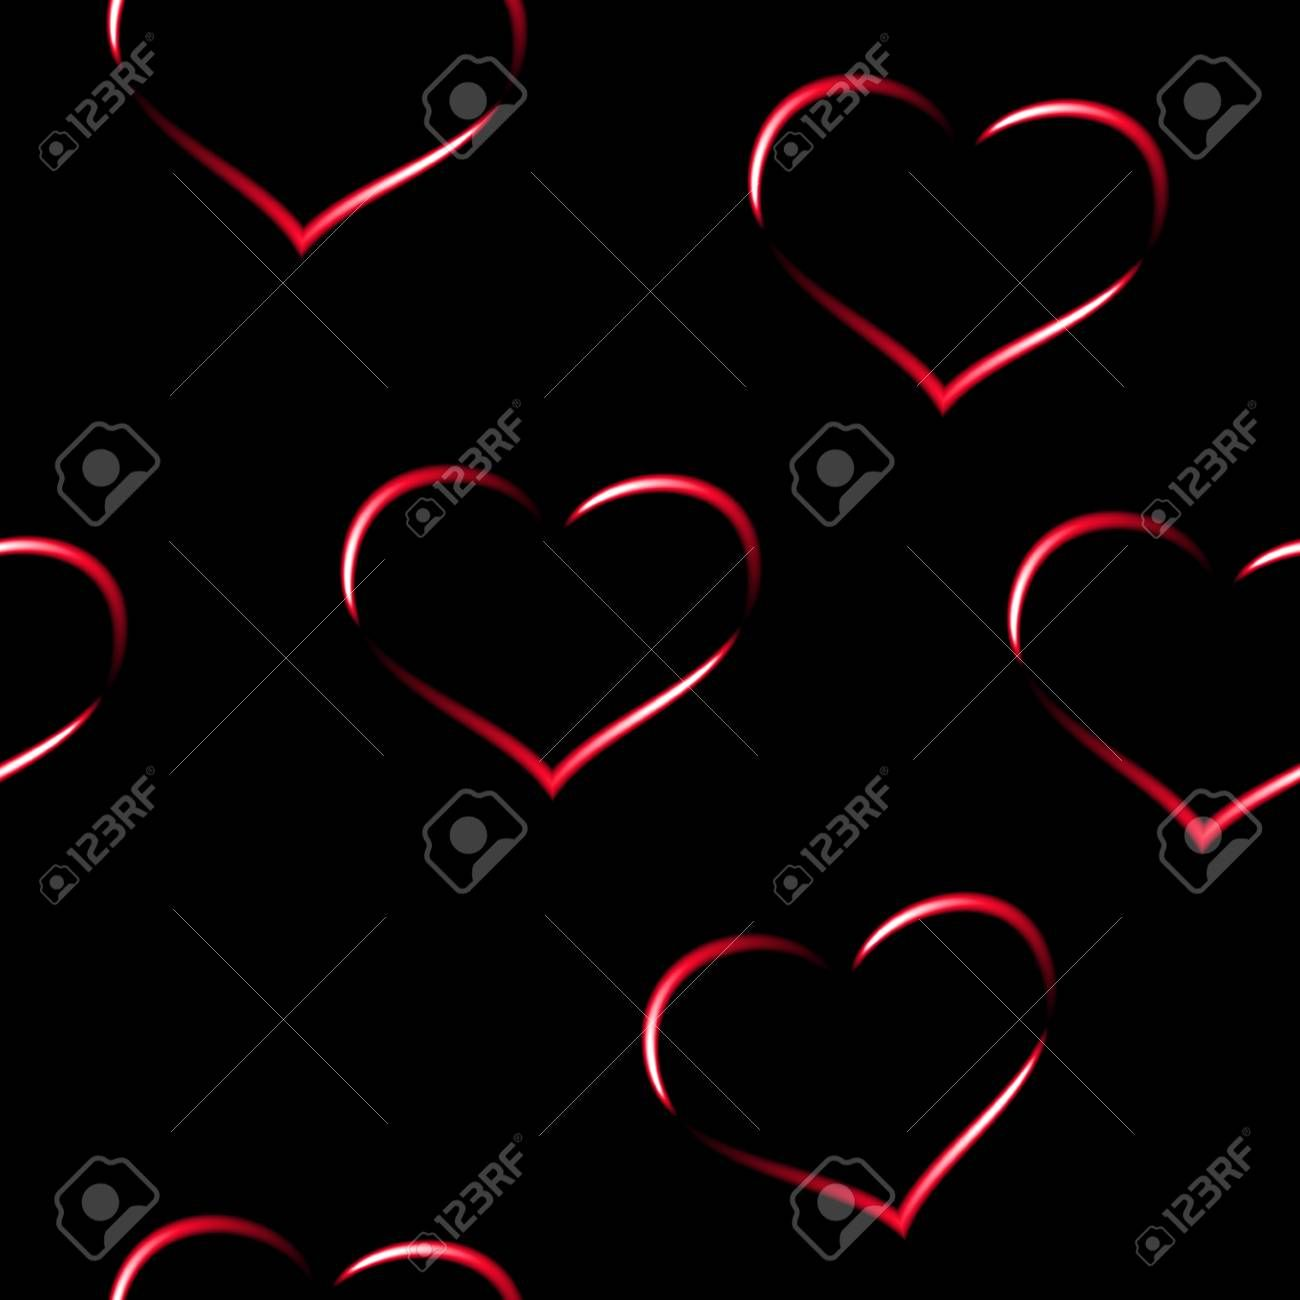 Red neon hearts seamless vector background